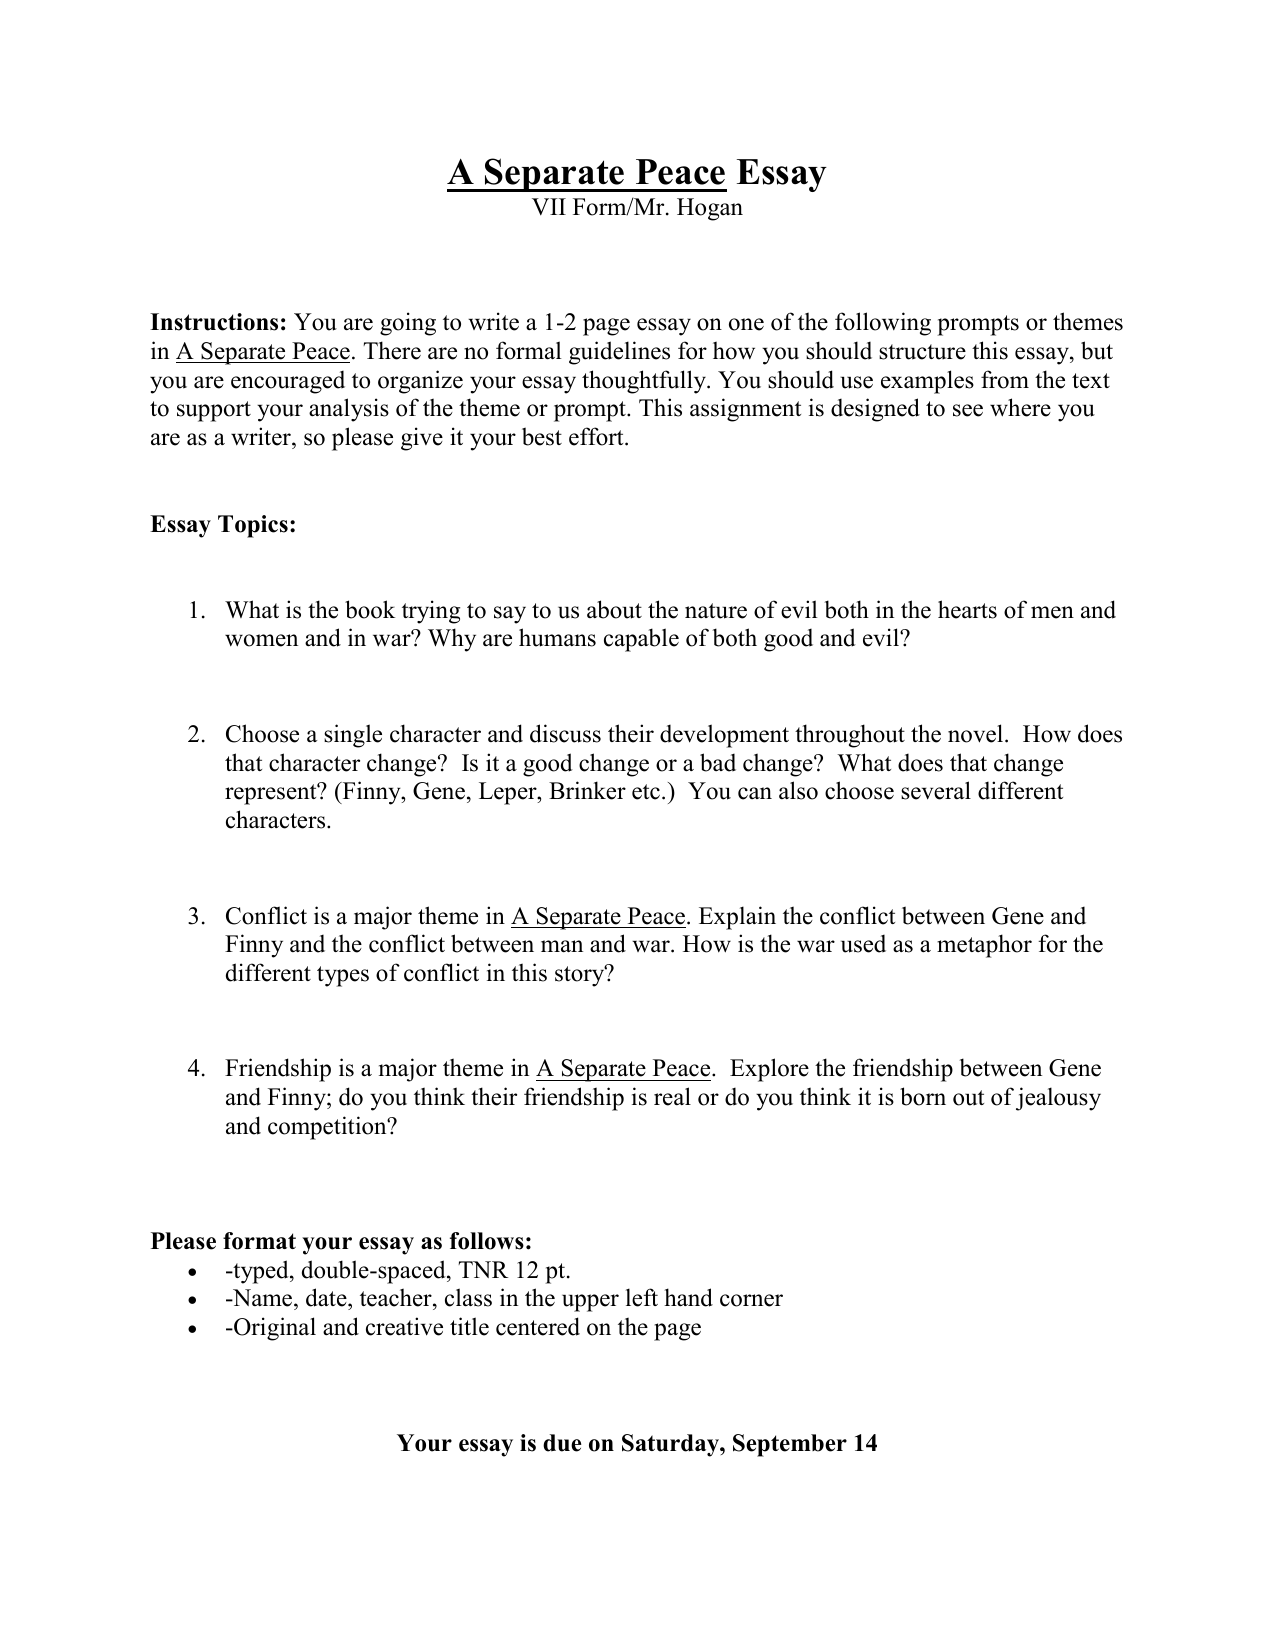 Sample Essay Proposal  Abraham Lincoln Essay Paper also Thesis Statement Examples For Persuasive Essays A Separate Peace Essay Business Management Essay Topics